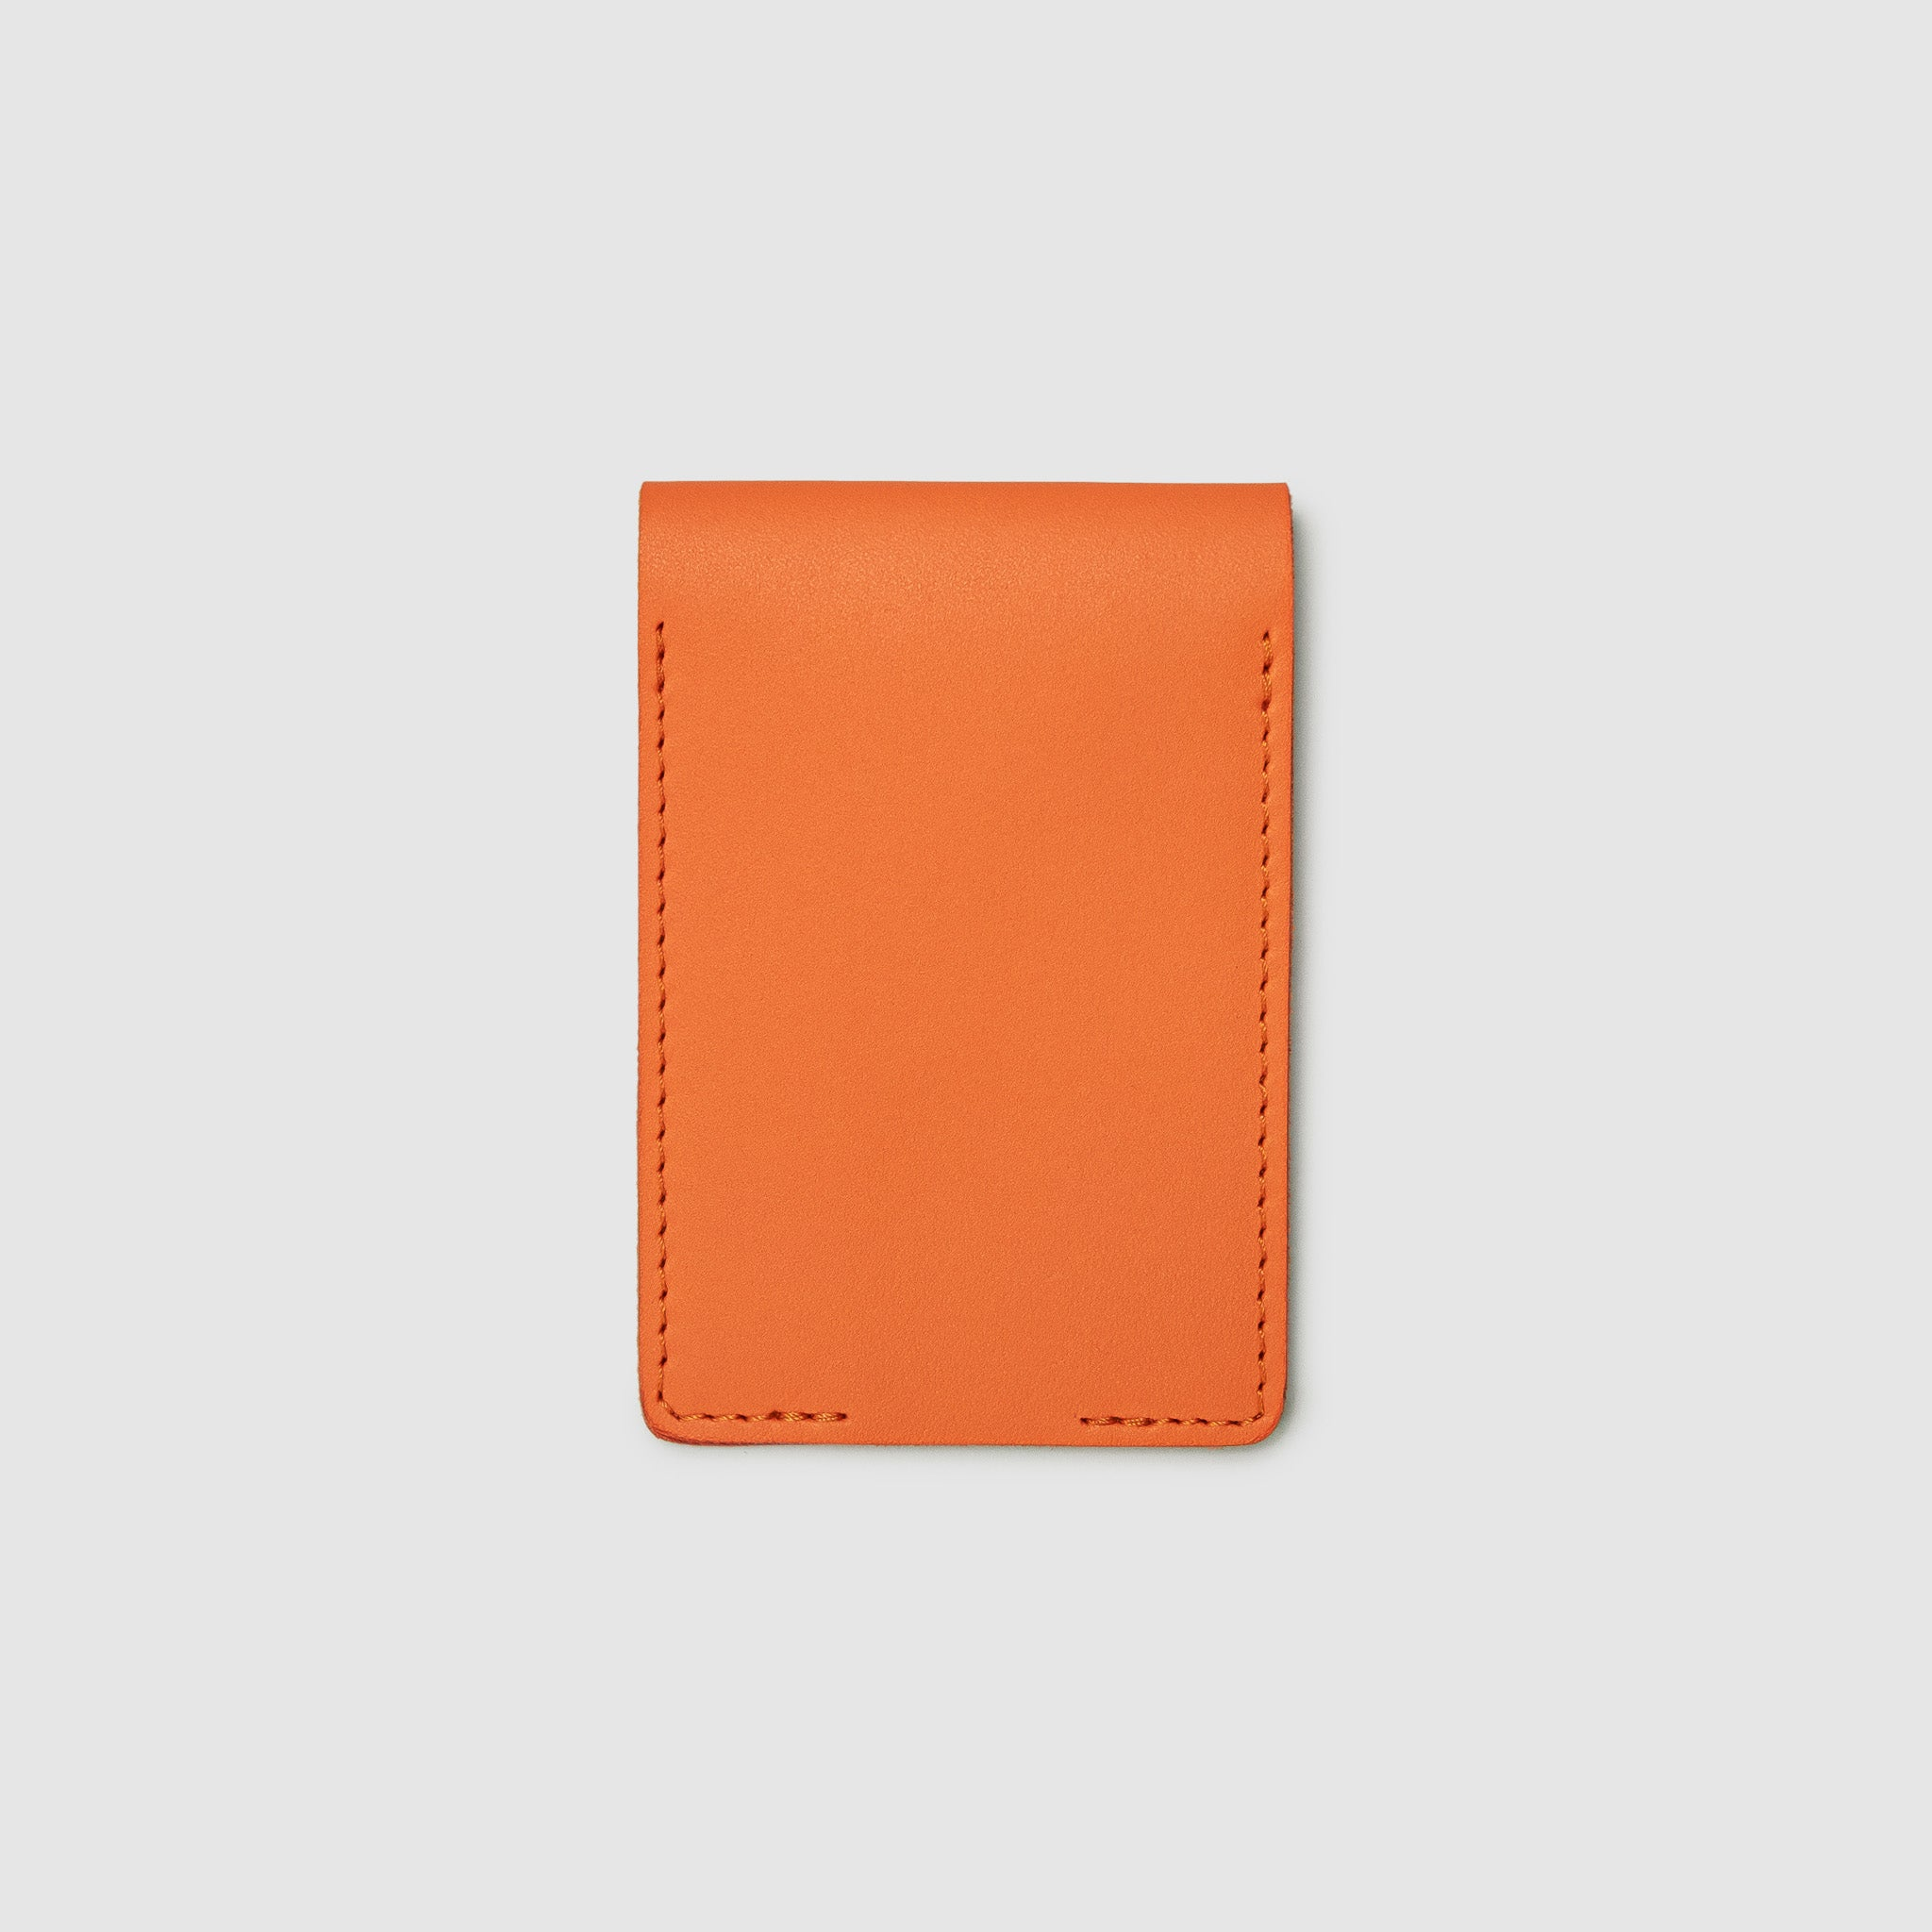 Anson Calder bifold or business card Wallet RFID french calfskin leather _fshd-orange